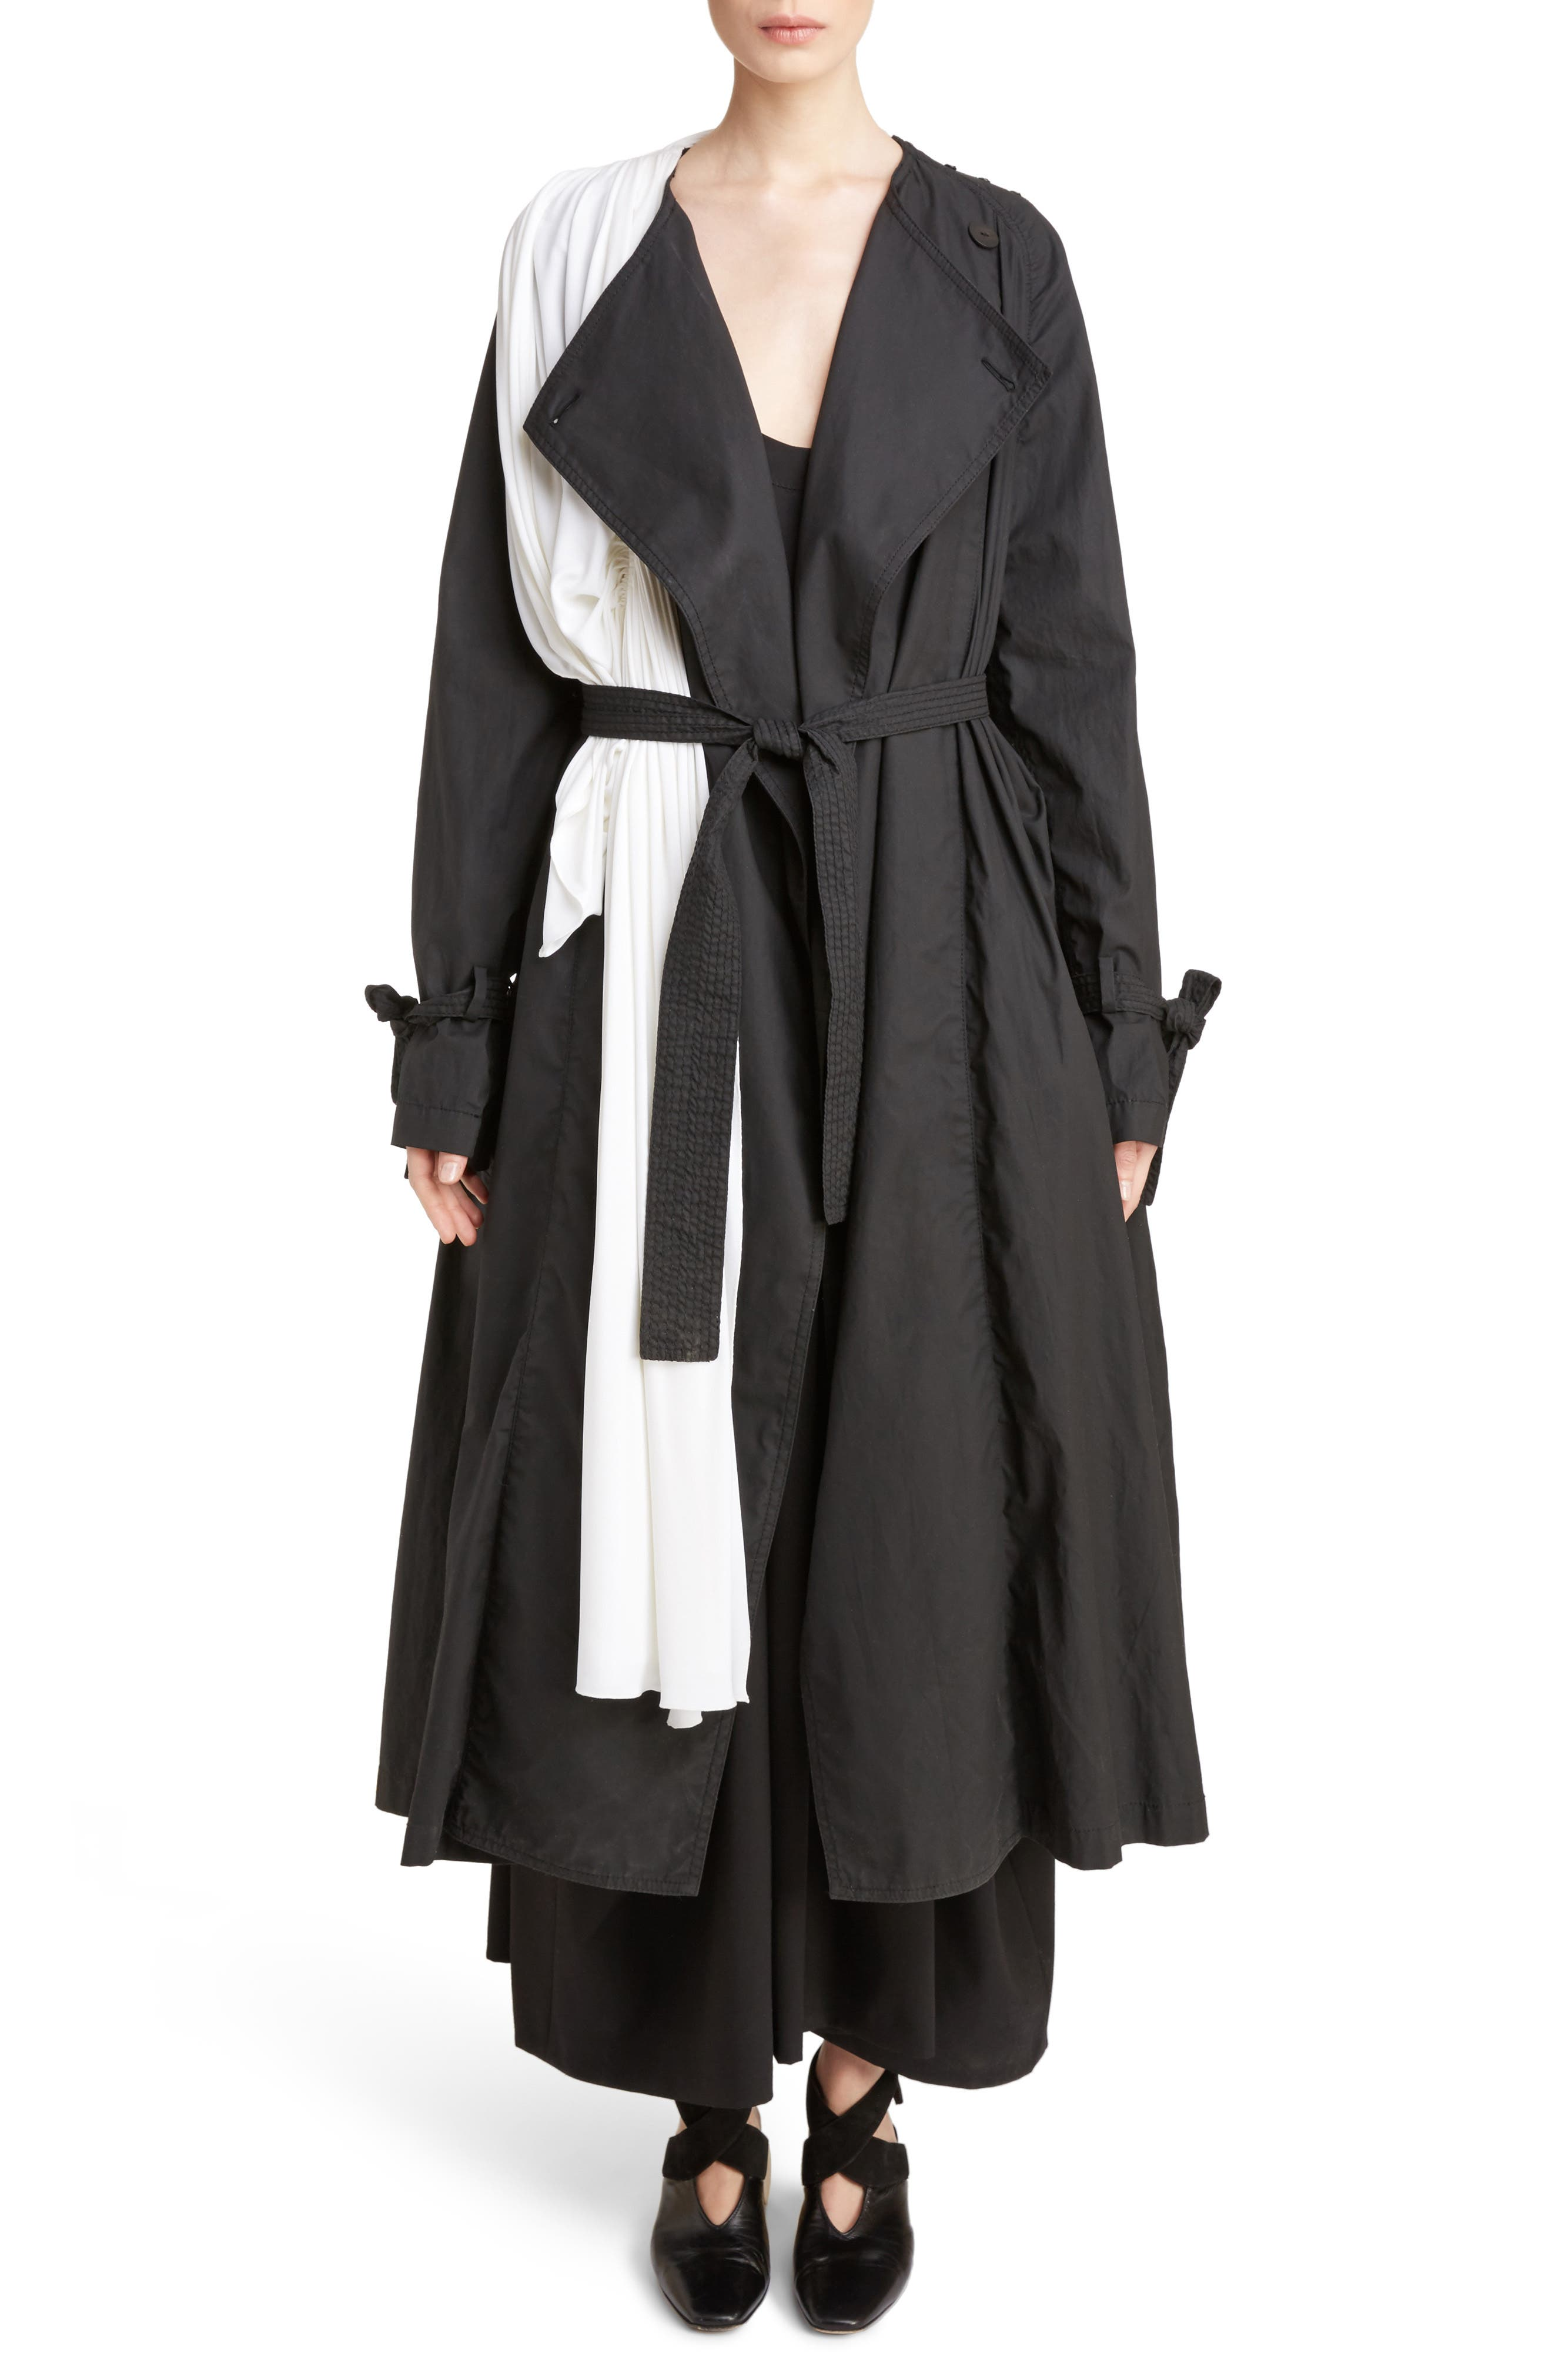 J.W.ANDERSON Draped Collar Trench Coat,                         Main,                         color, Black